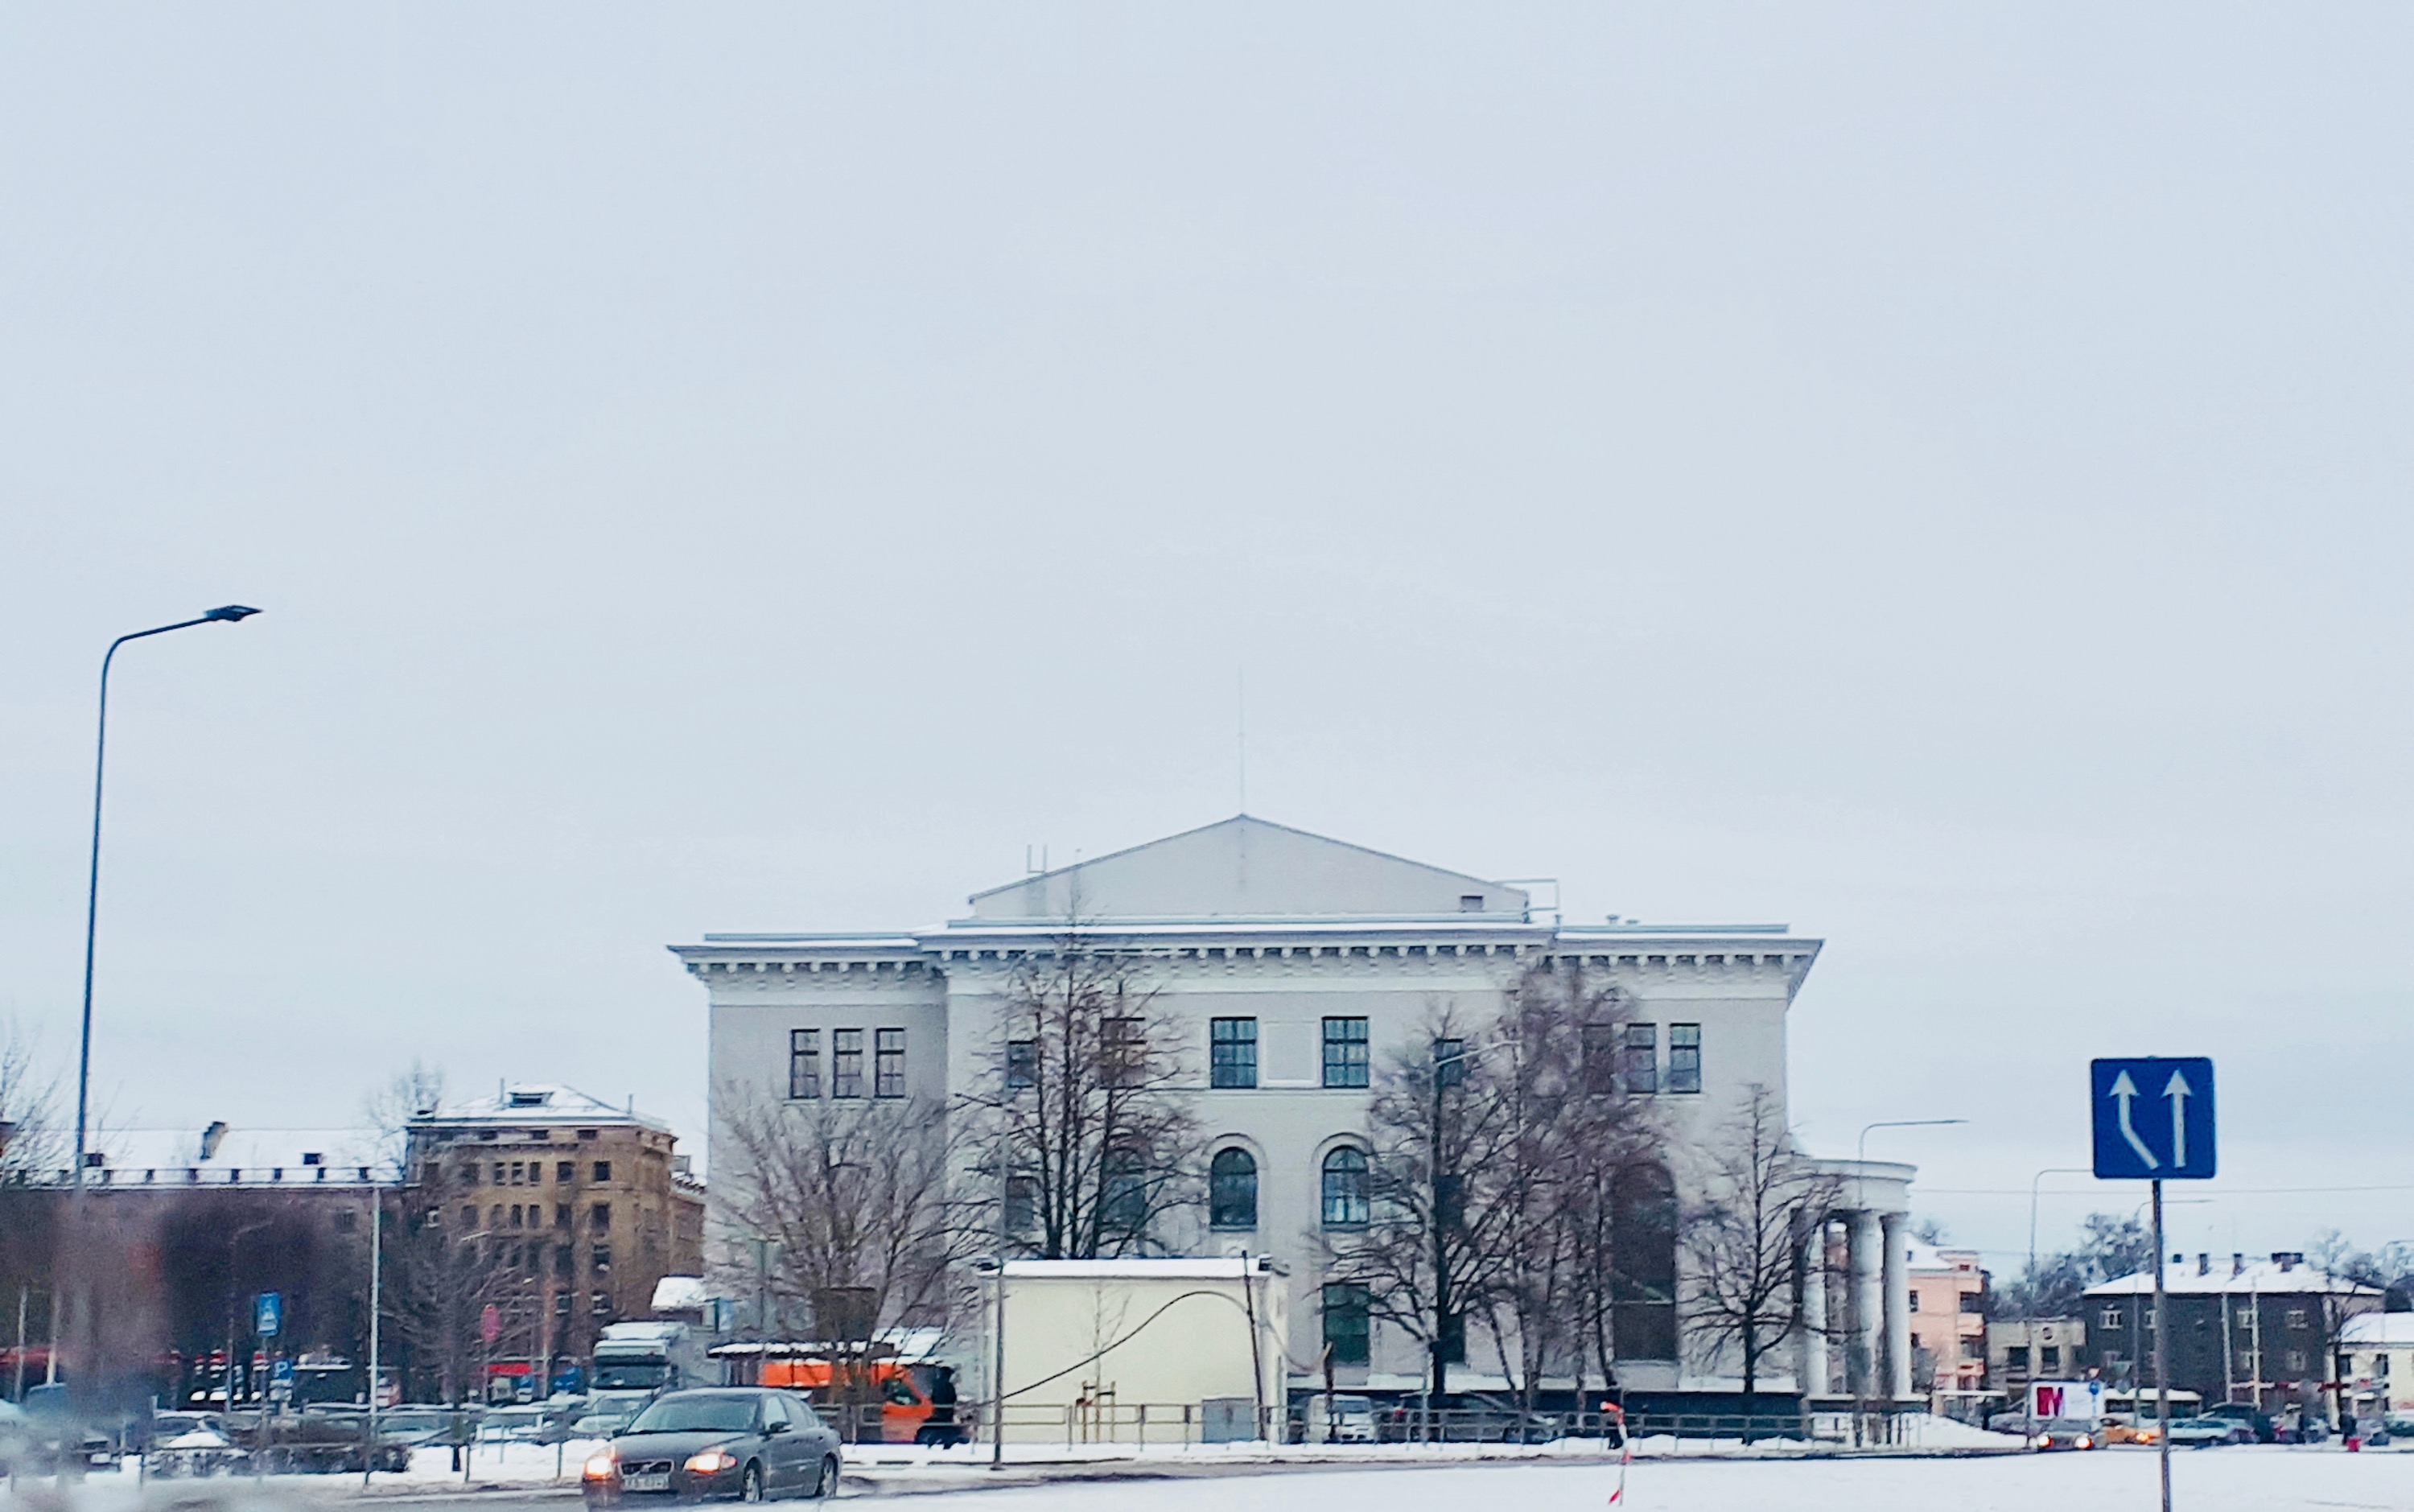 VEF Culture palace in winter time.